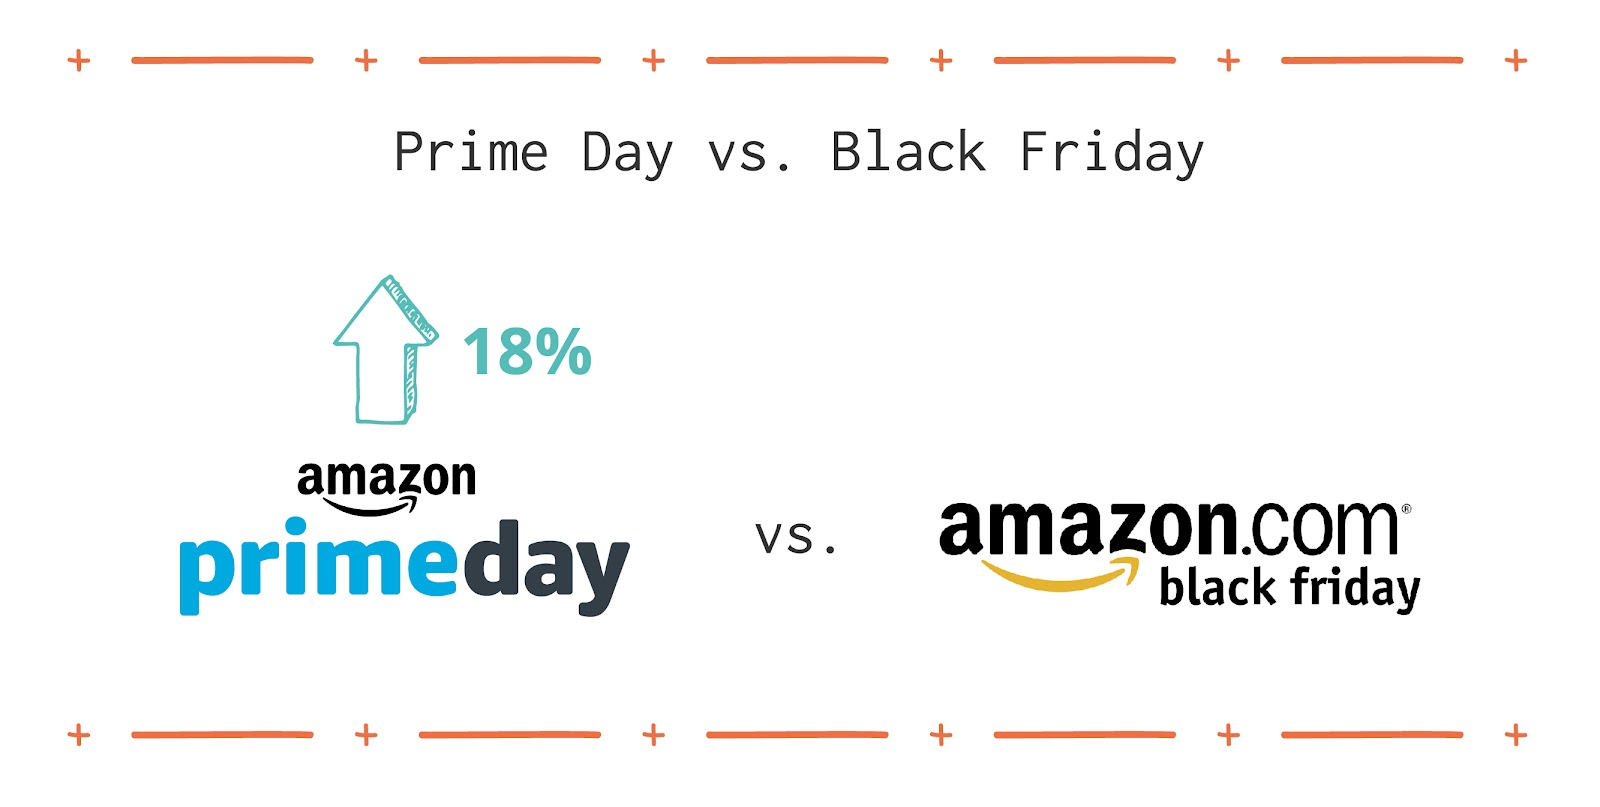 How Does Prime Day Compare to Black Friday and Cyber Monday?